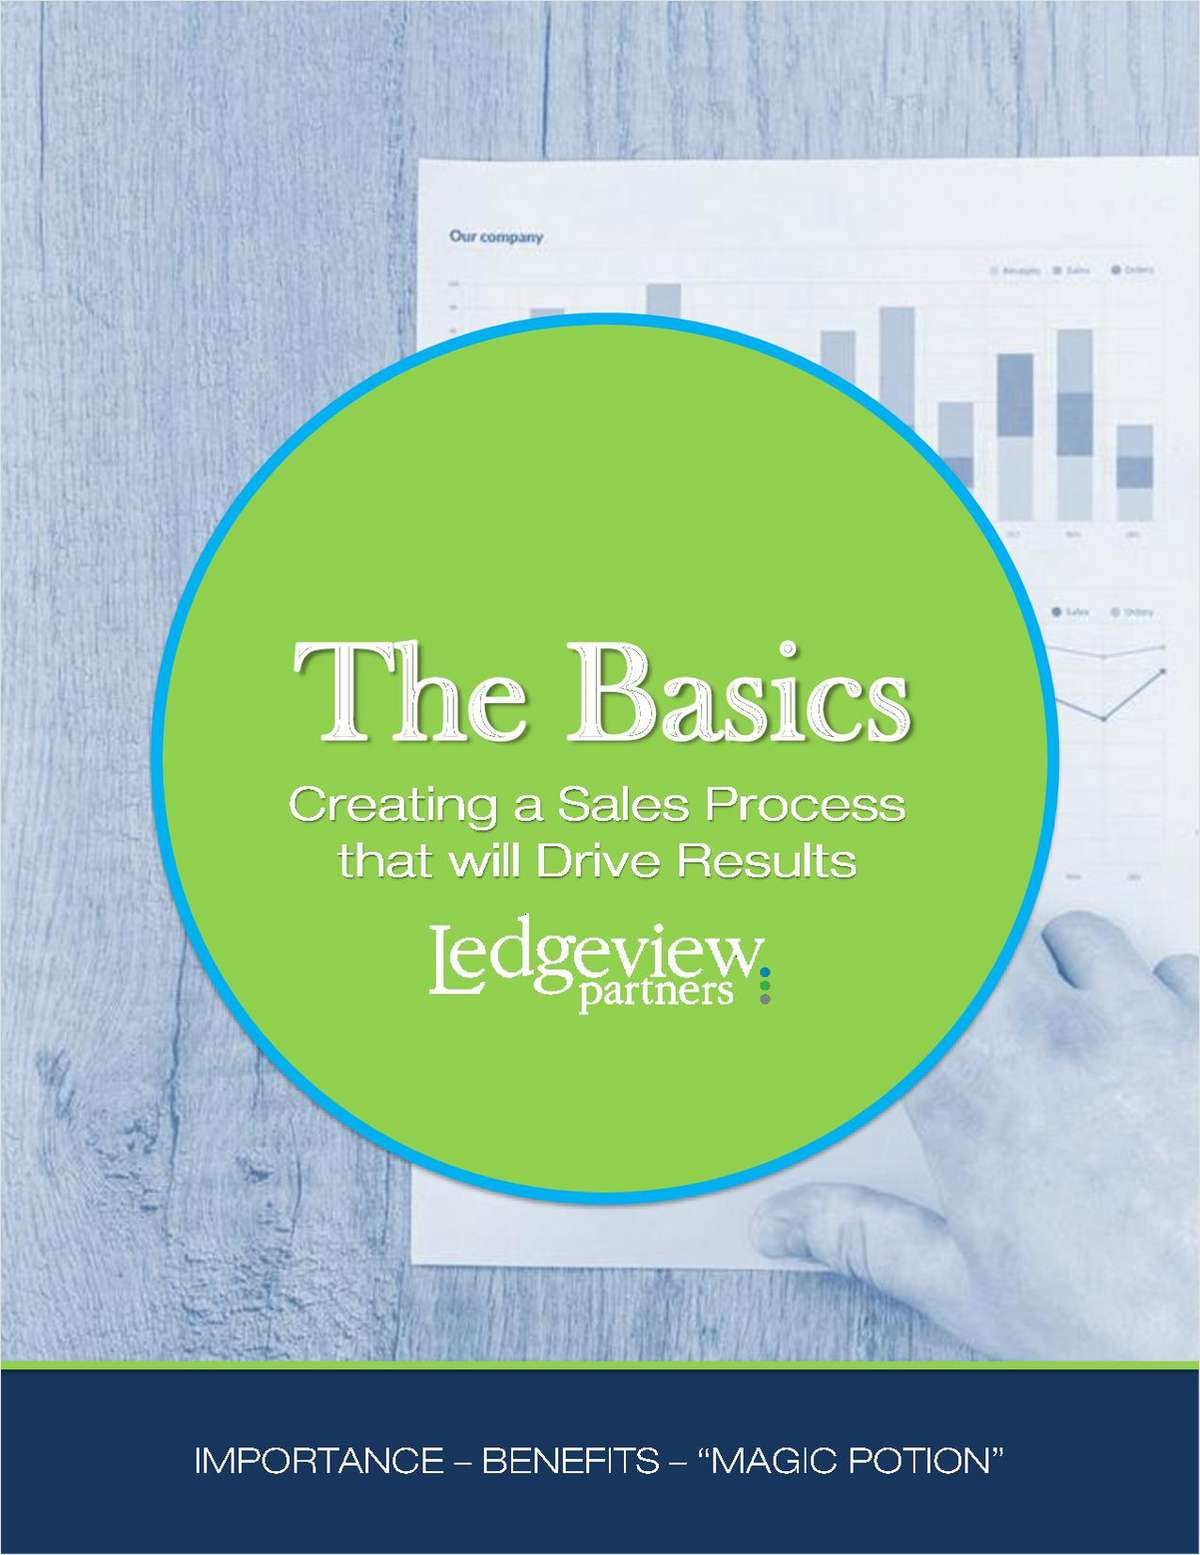 The Basics: Creating a Sales Process that will Drive Results